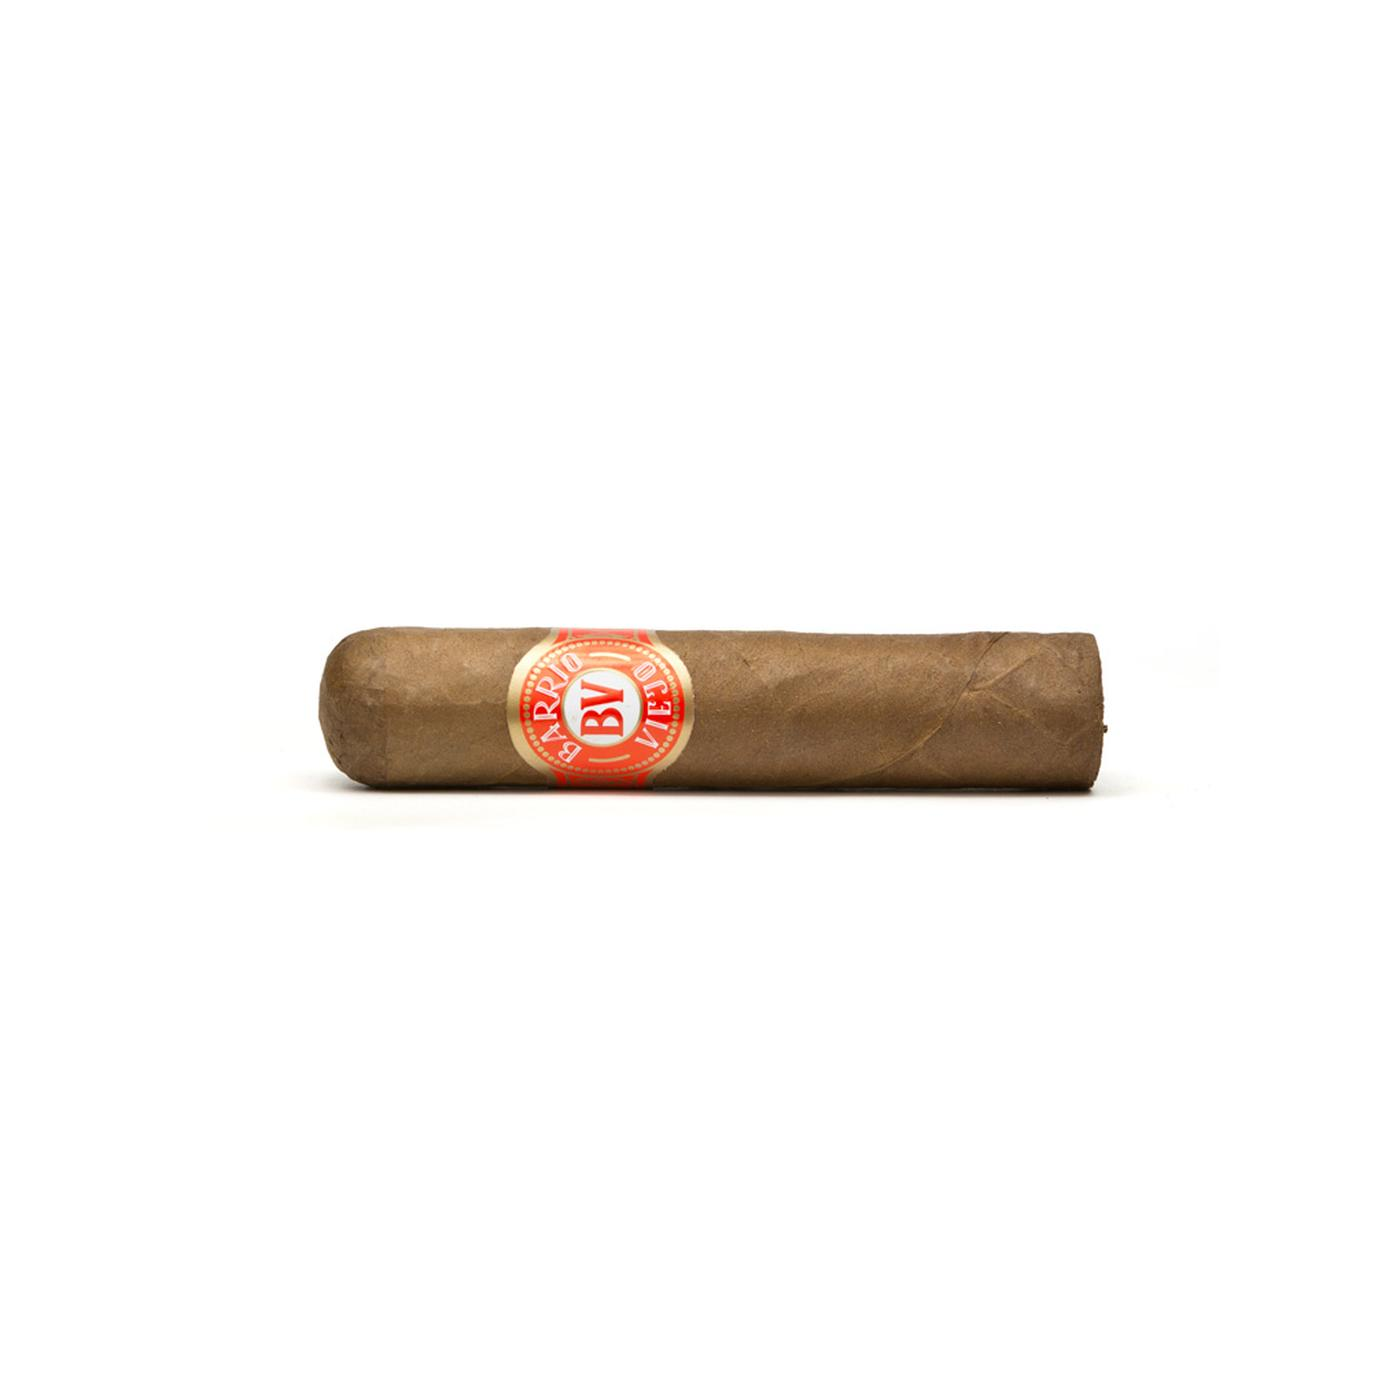 Barrio Viejo Short Robusto